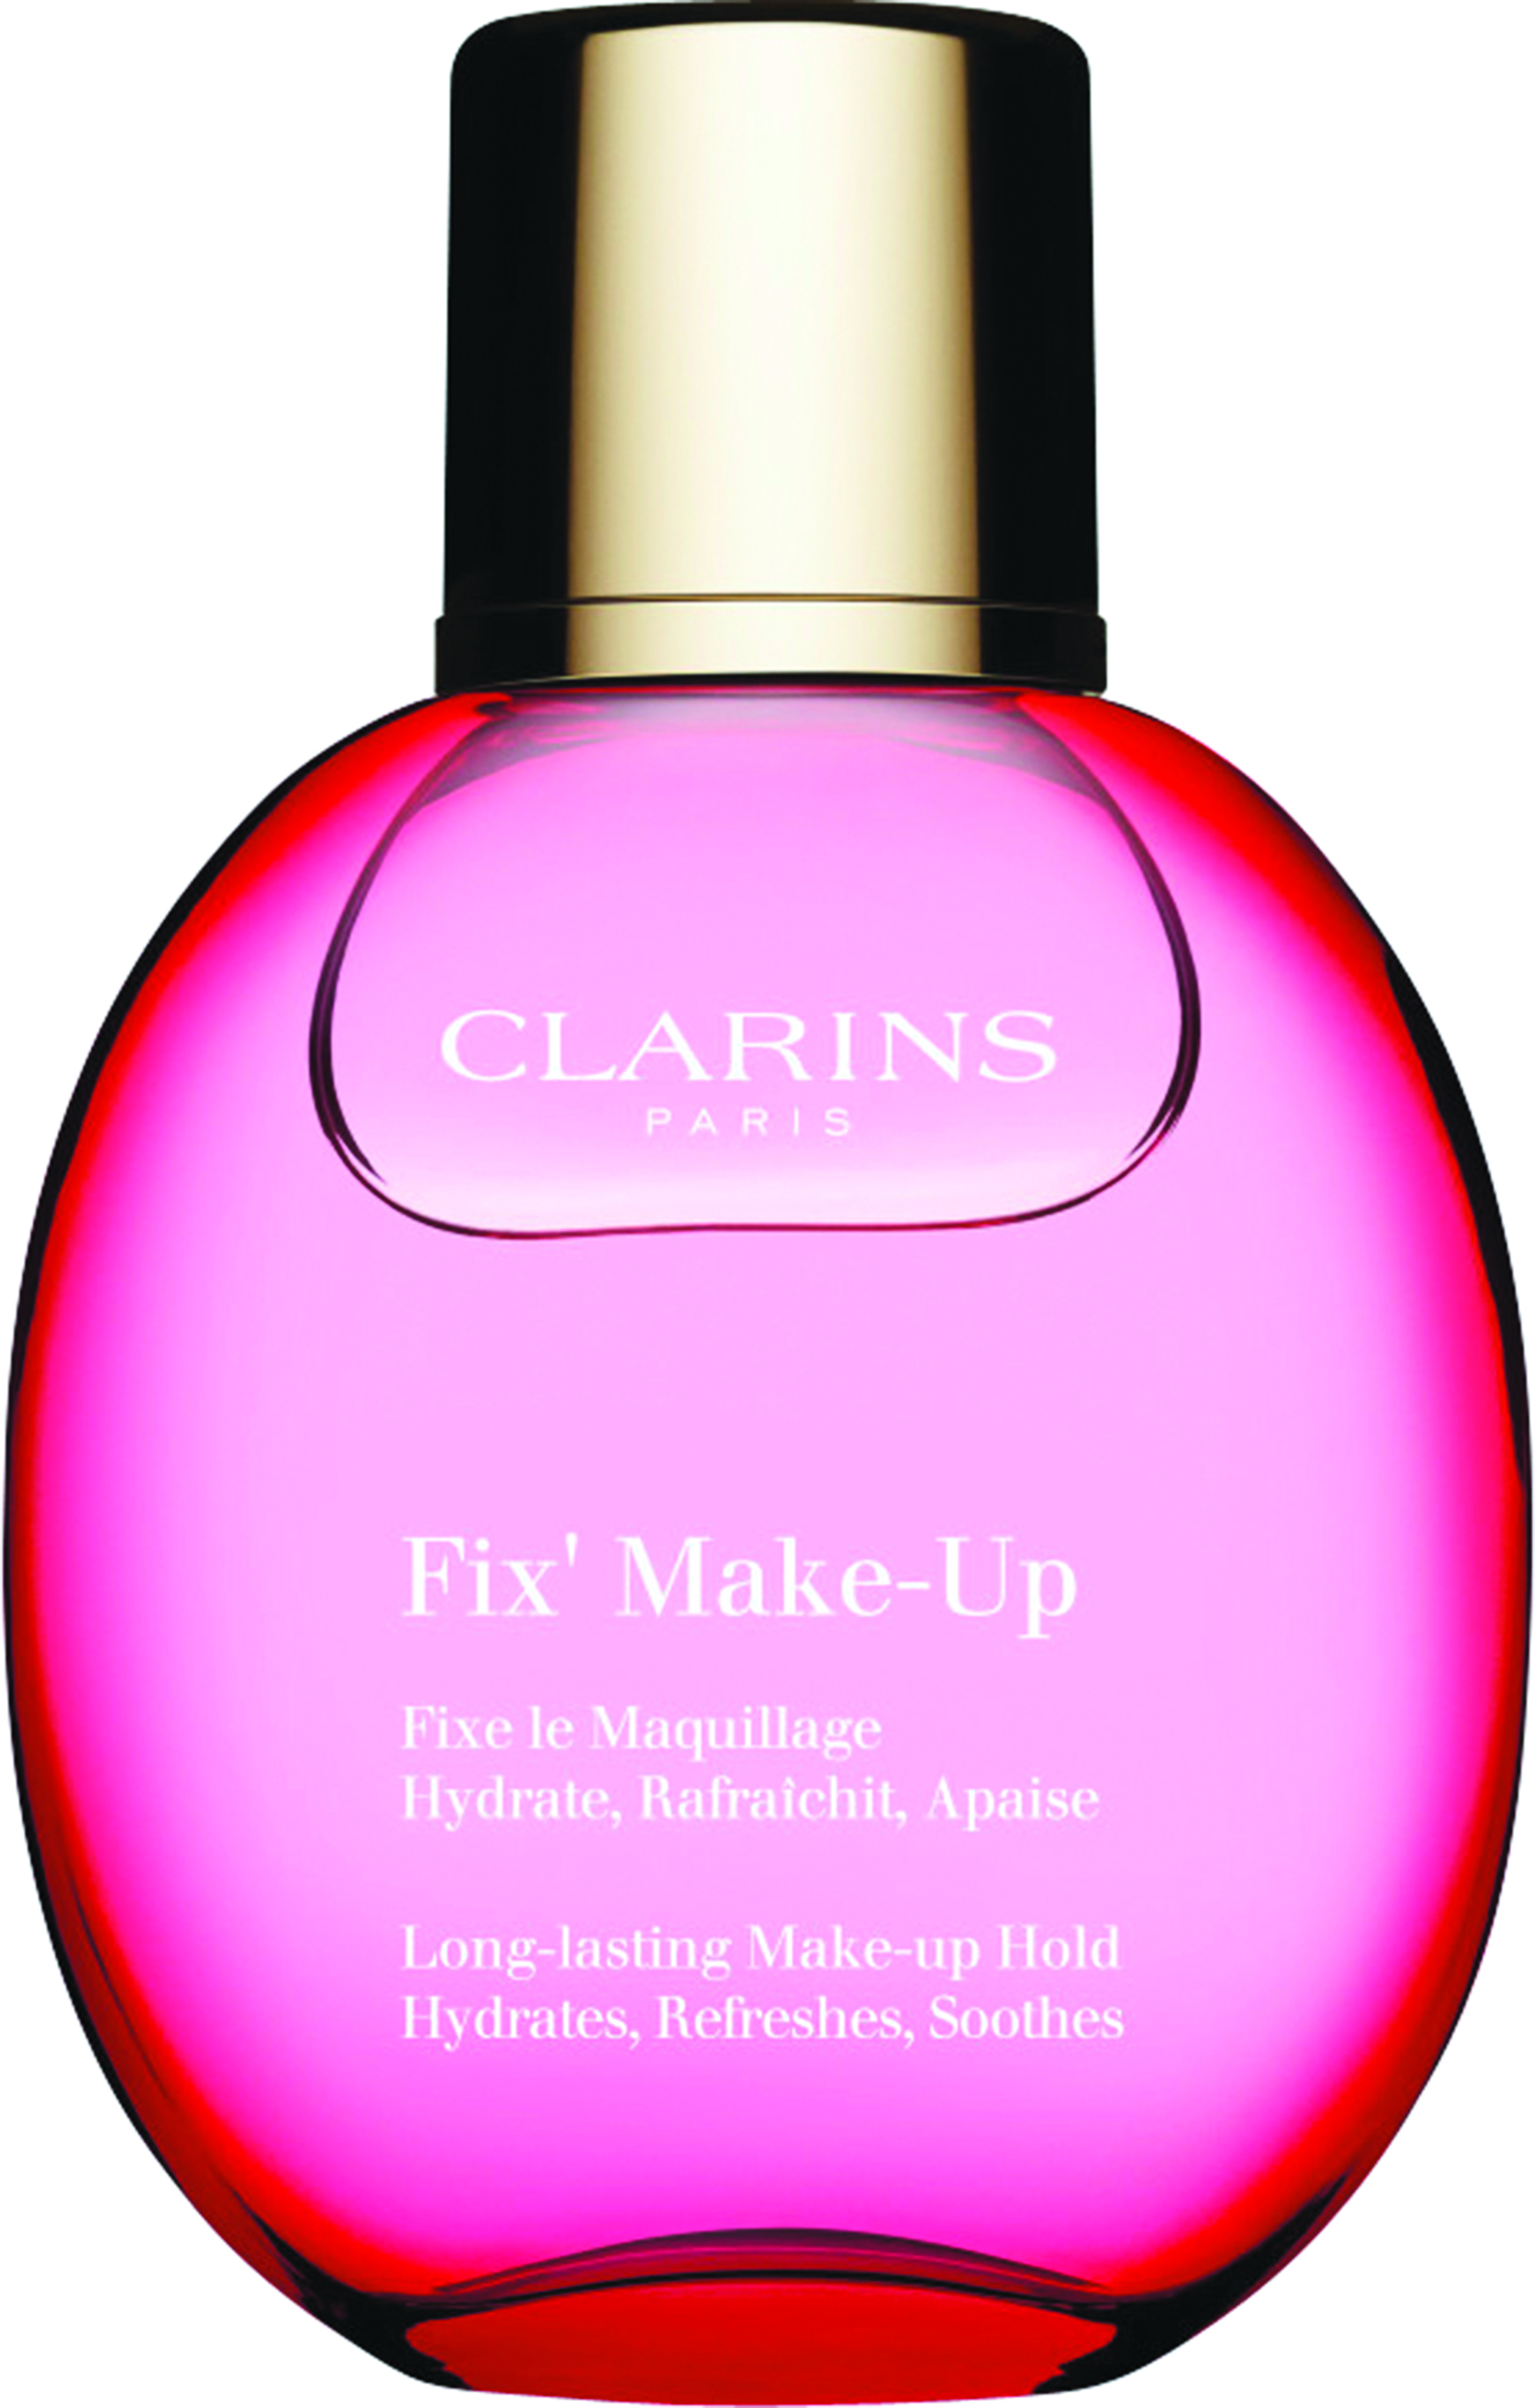 clarins_fix_make_up_30ml